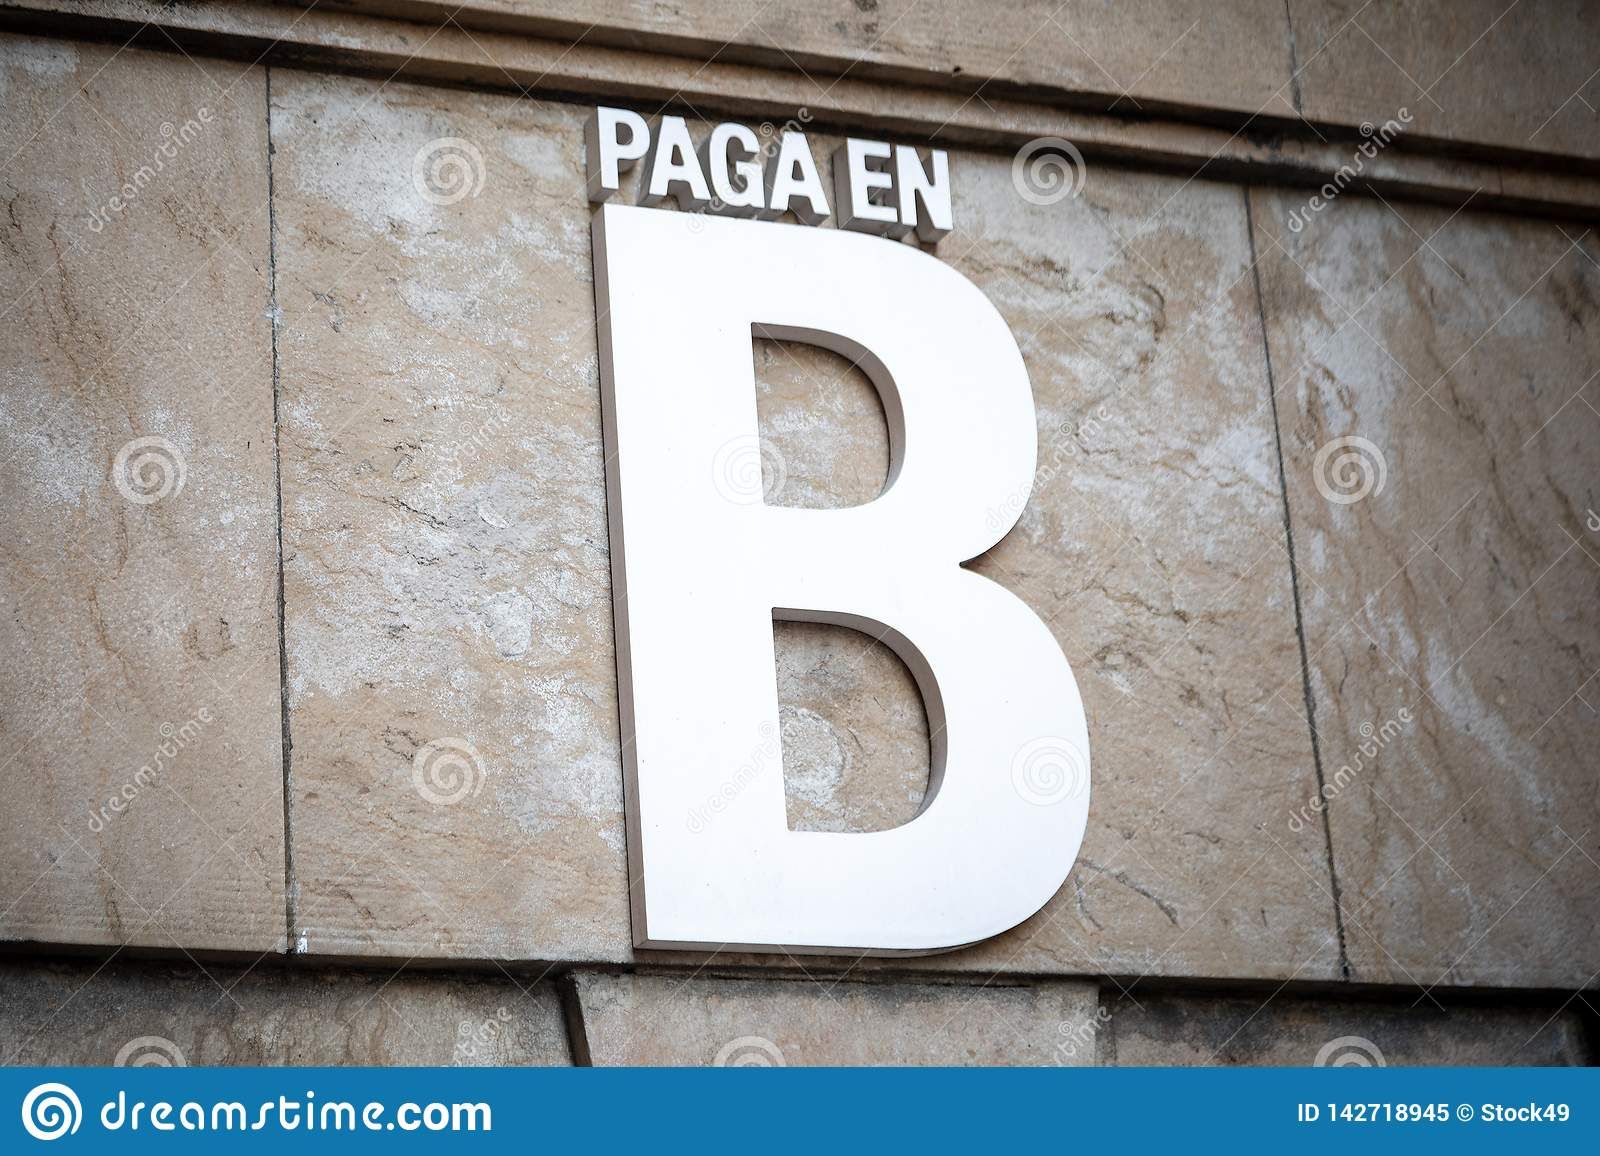 Payment in B black money in Spanish.